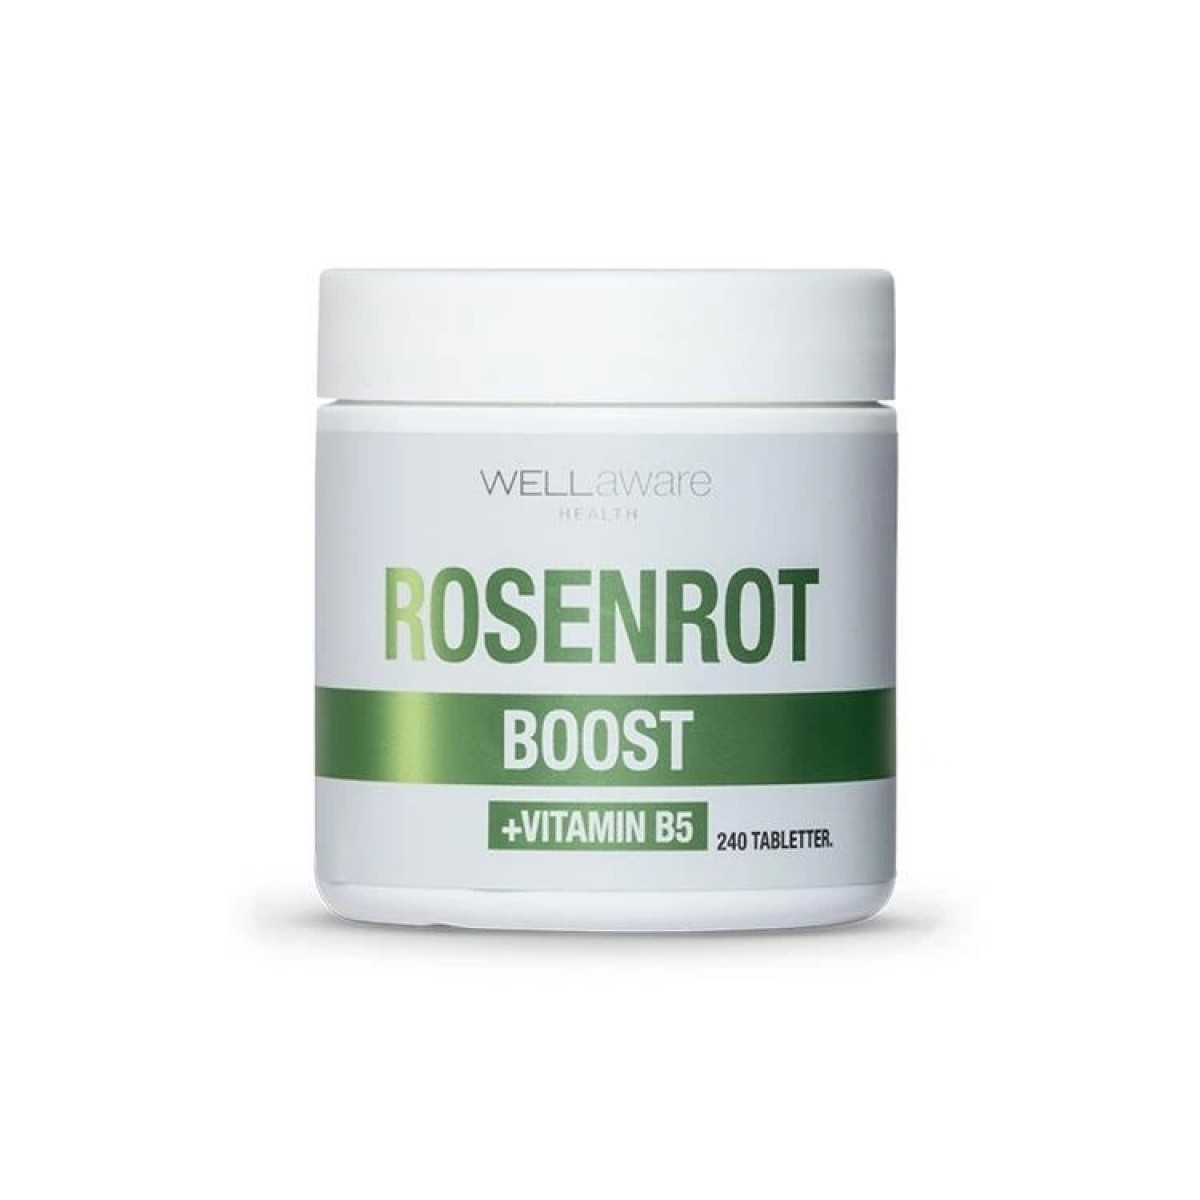 Back on Track WELLaware - Rosenrot (rosenrod + 5B vitamin)